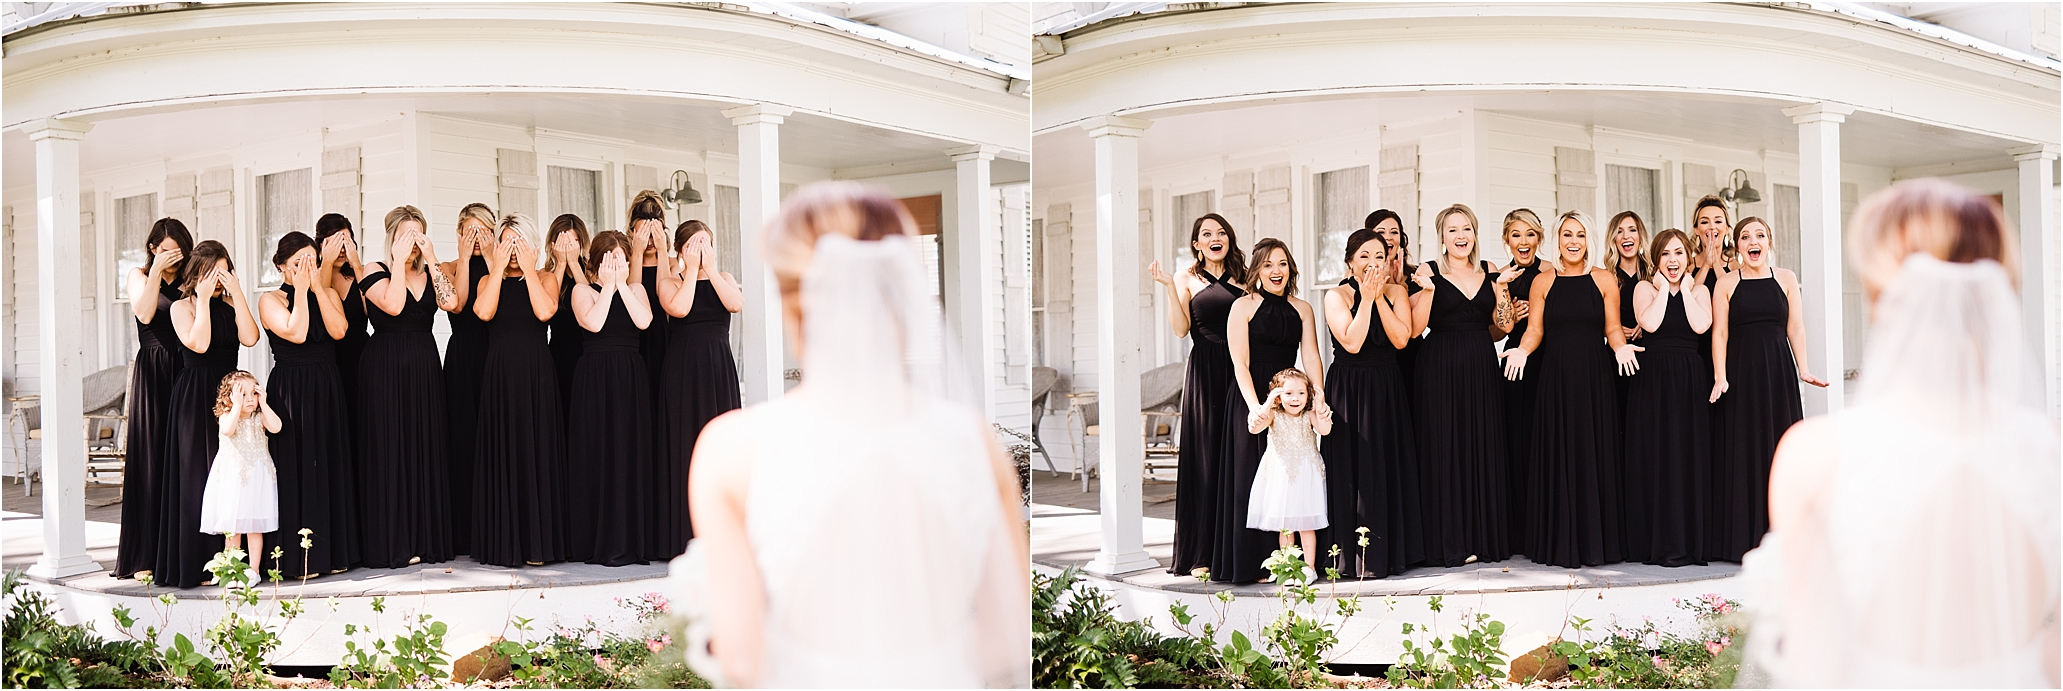 PattisonHouse_TexasWeddingPhotographer_CarlyCrockett&MattBrownWedding_0079.jpg